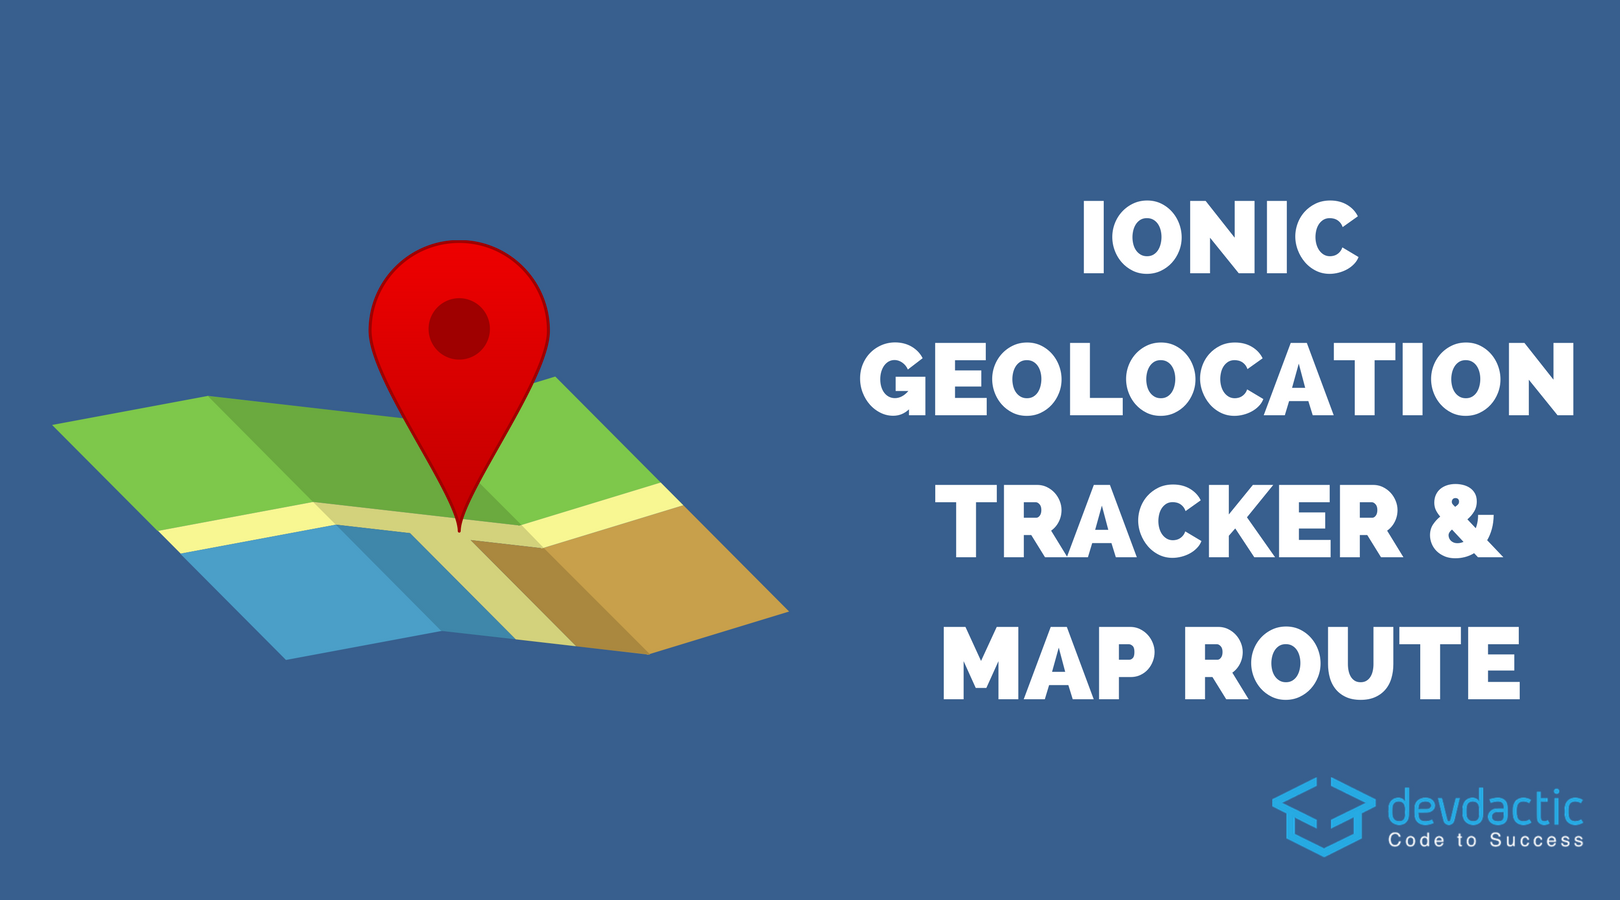 Building an Ionic Geolocation Tracker with Google Map and Track